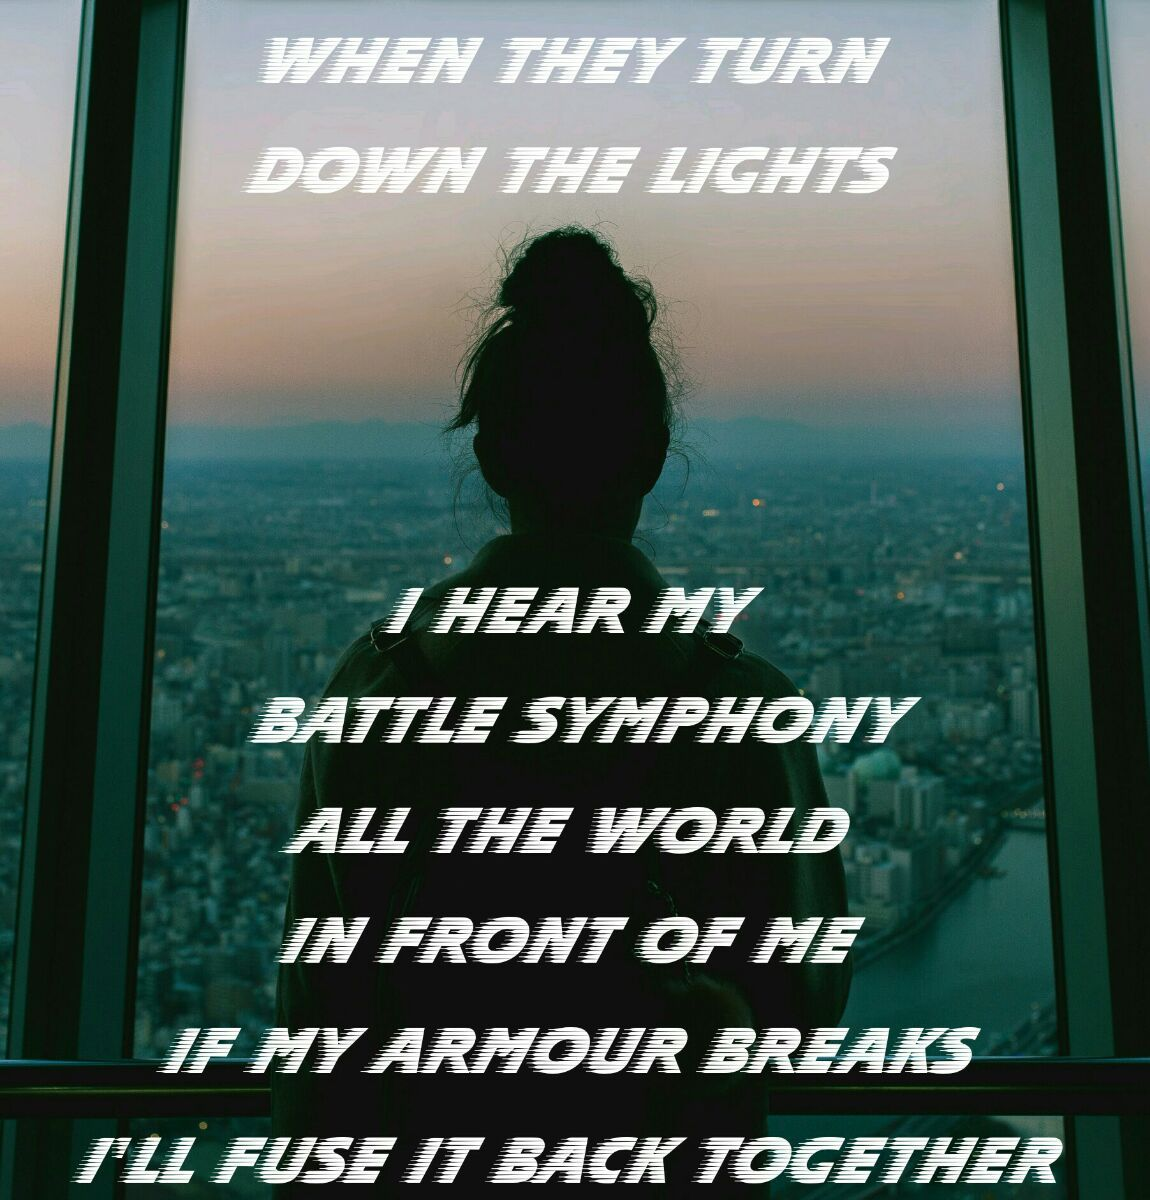 Battle symphony -Linkin Park | Song lyrics | Song lyric